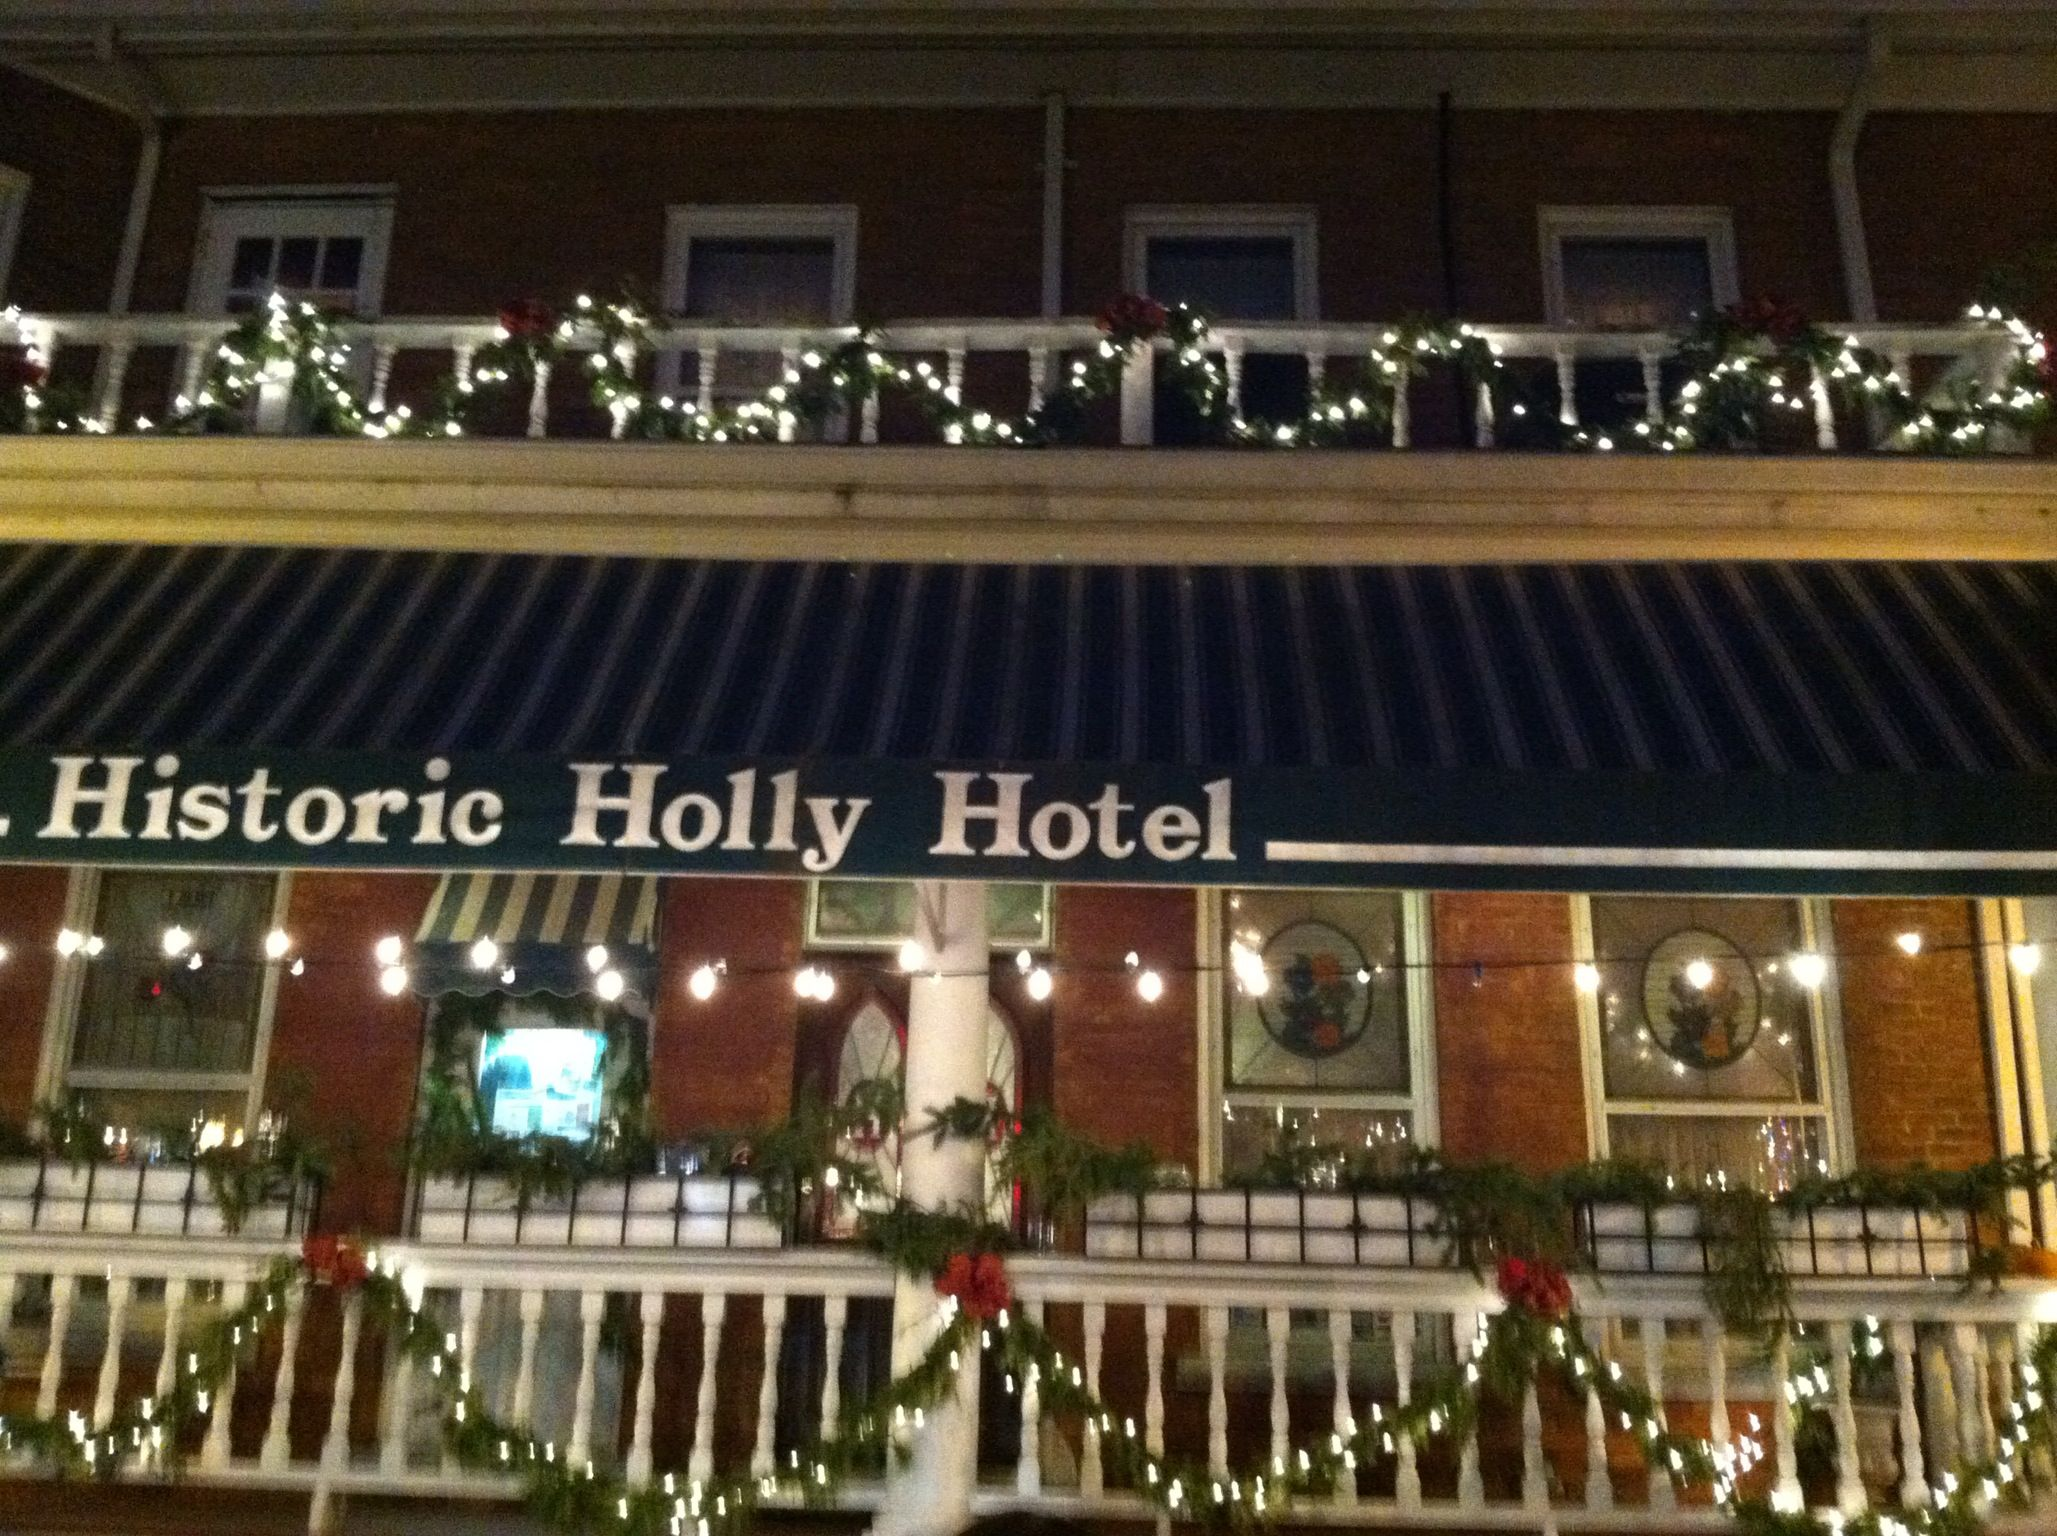 Historic Holly Hotel In Mi Is A Beautiful Location To Have Your Christmas Wedding